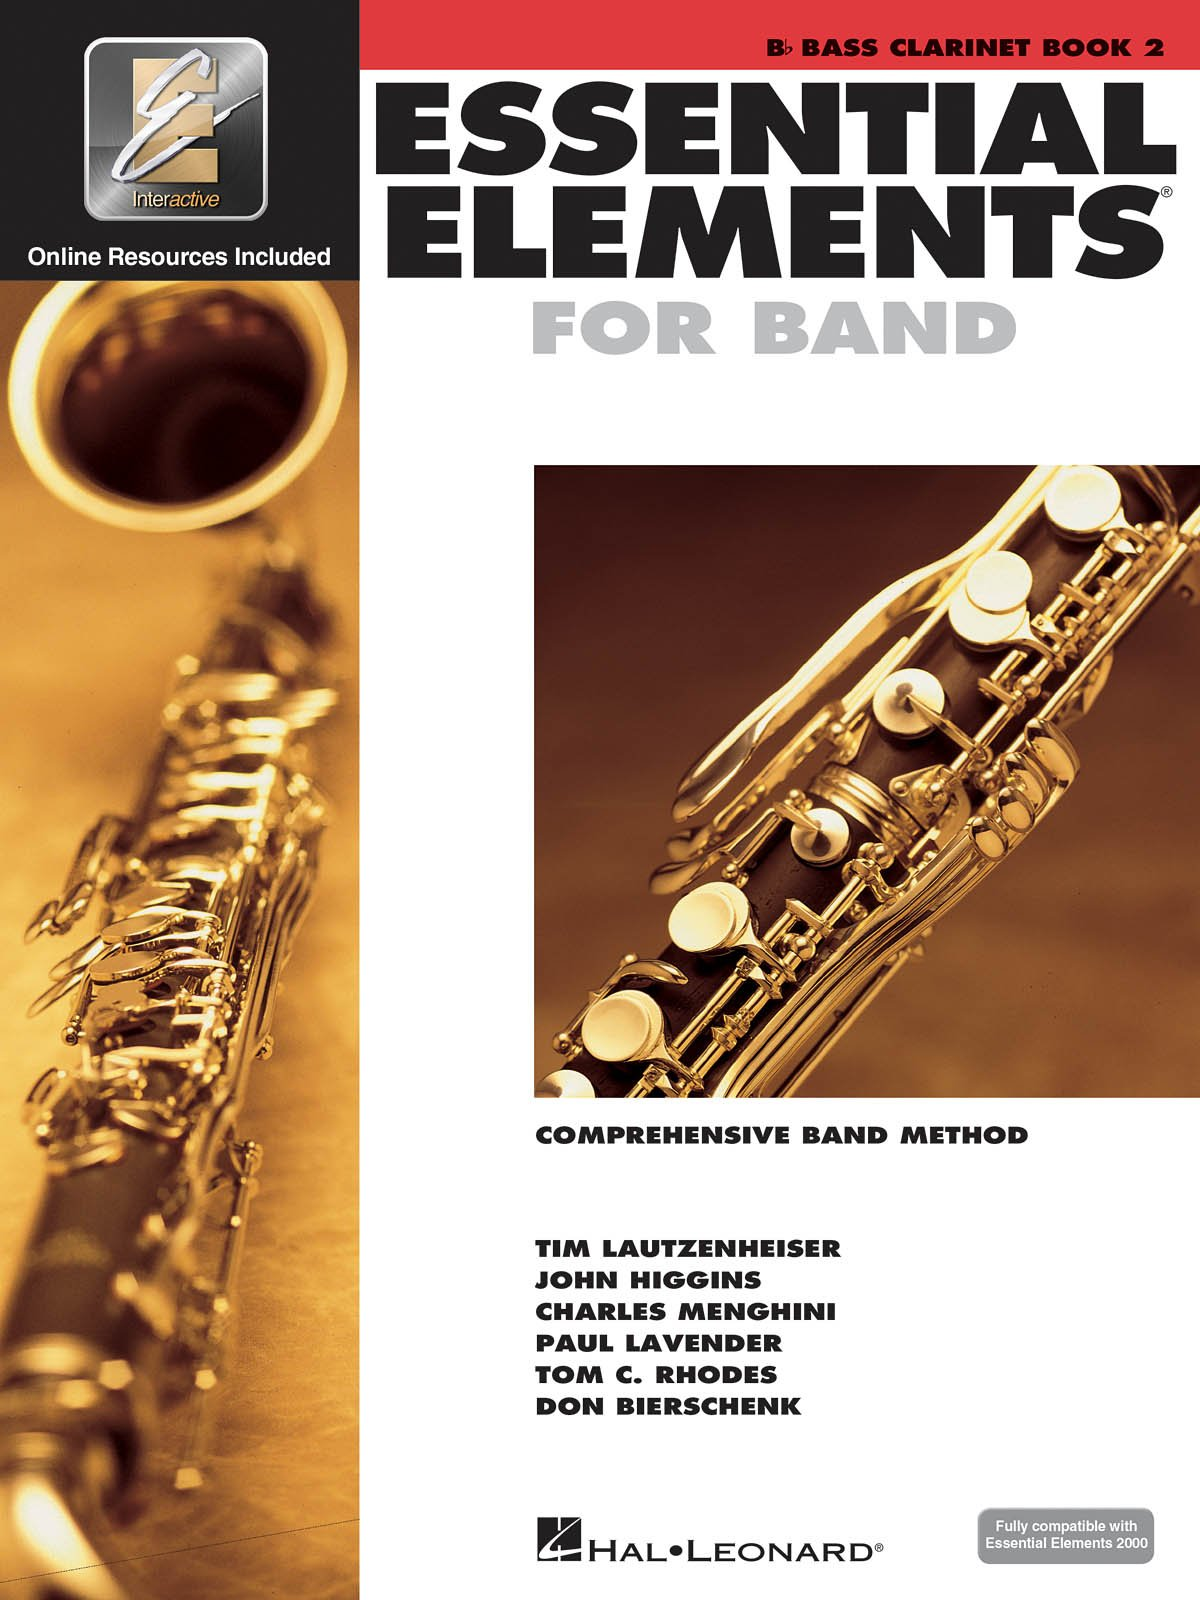 Bass Clarinet Book 2 Essential Elements for Band